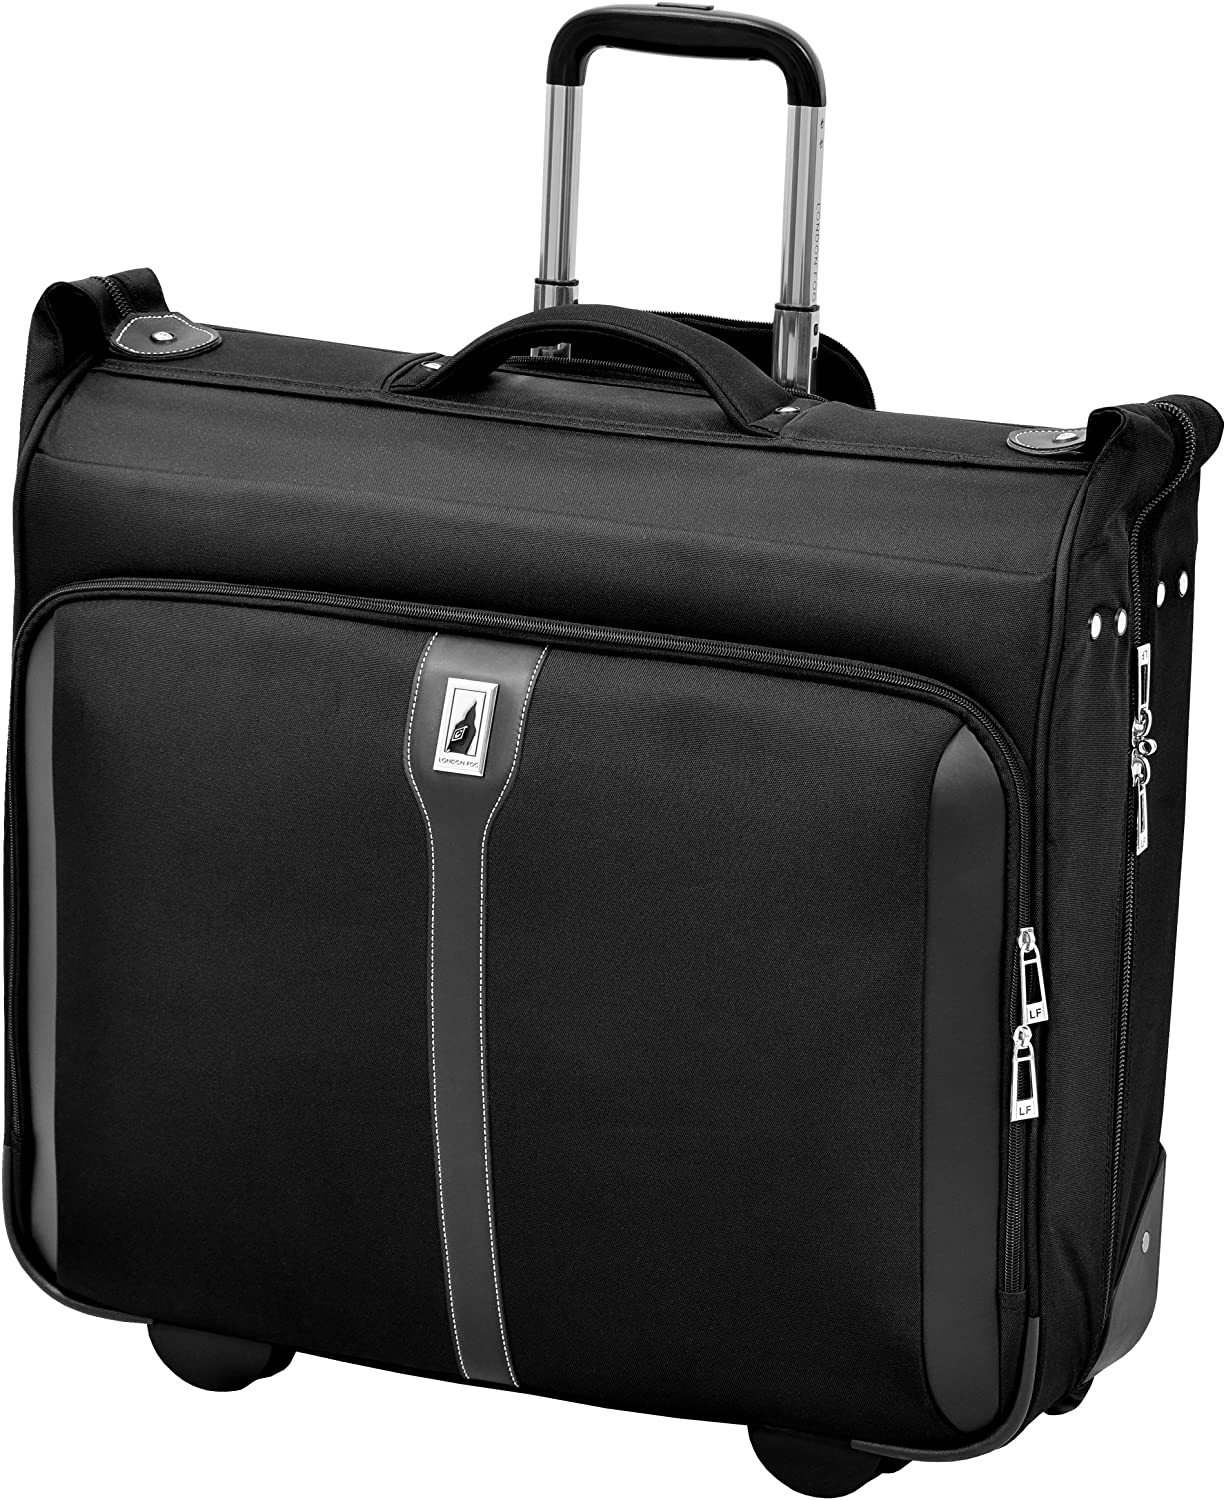 "London Fog Knightsbridge 44"" Wheeled Garment Bag, Black, One Size"